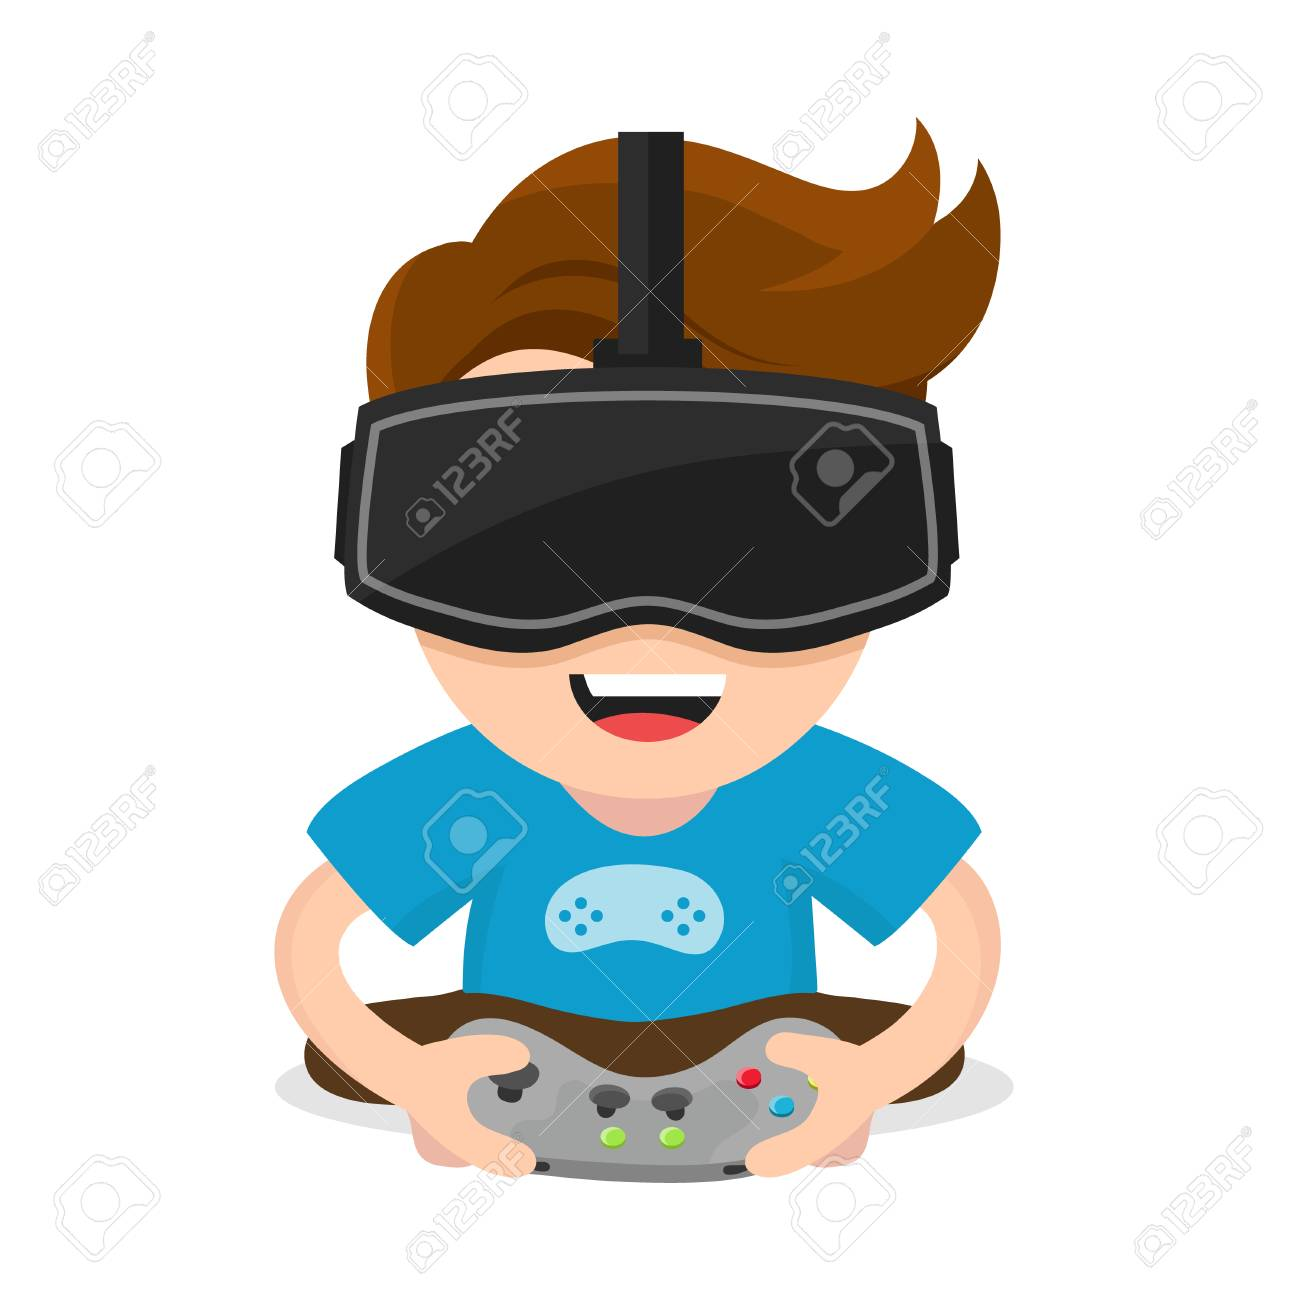 b9765e161f0 Isolated on white background. Virtual reality gamer vr concept. Cheerful  happy boy young man hold joystick plays video game in vr glasses.Vector flat